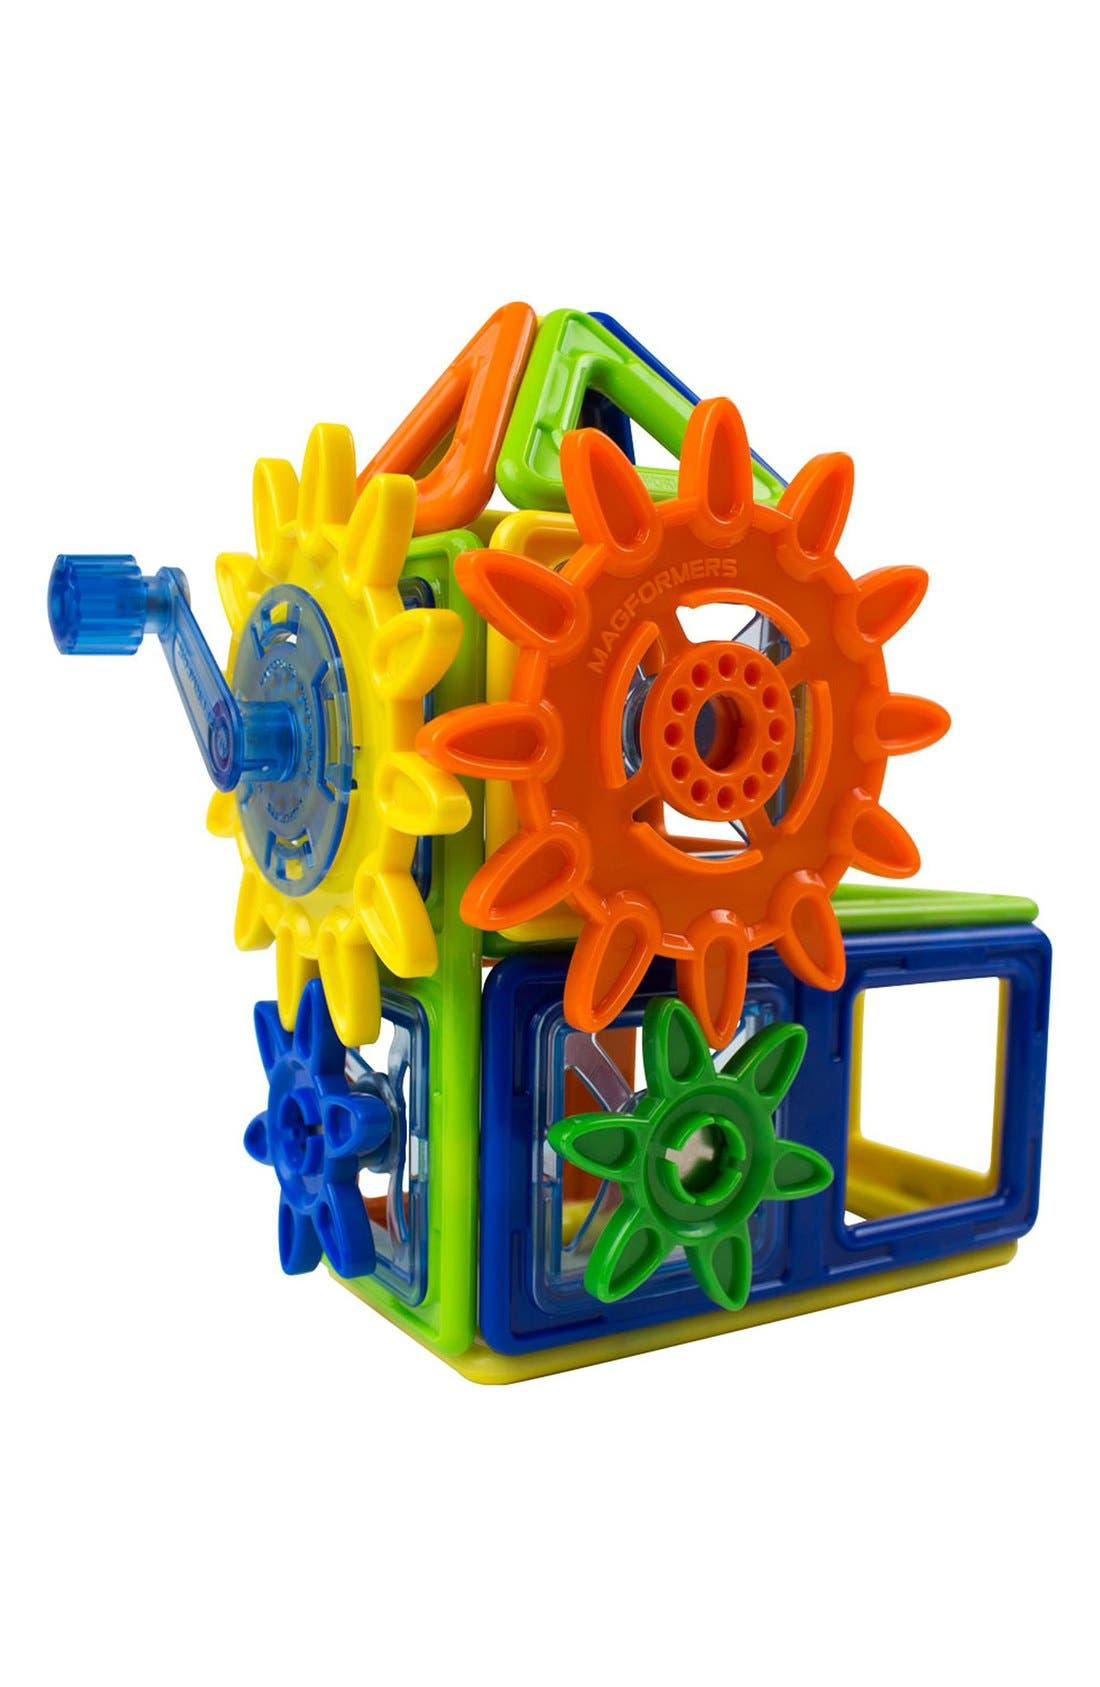 'Magnets in Motion' Magnetic 3D Construction Set,                             Alternate thumbnail 4, color,                             OPAQUE RAINBOW